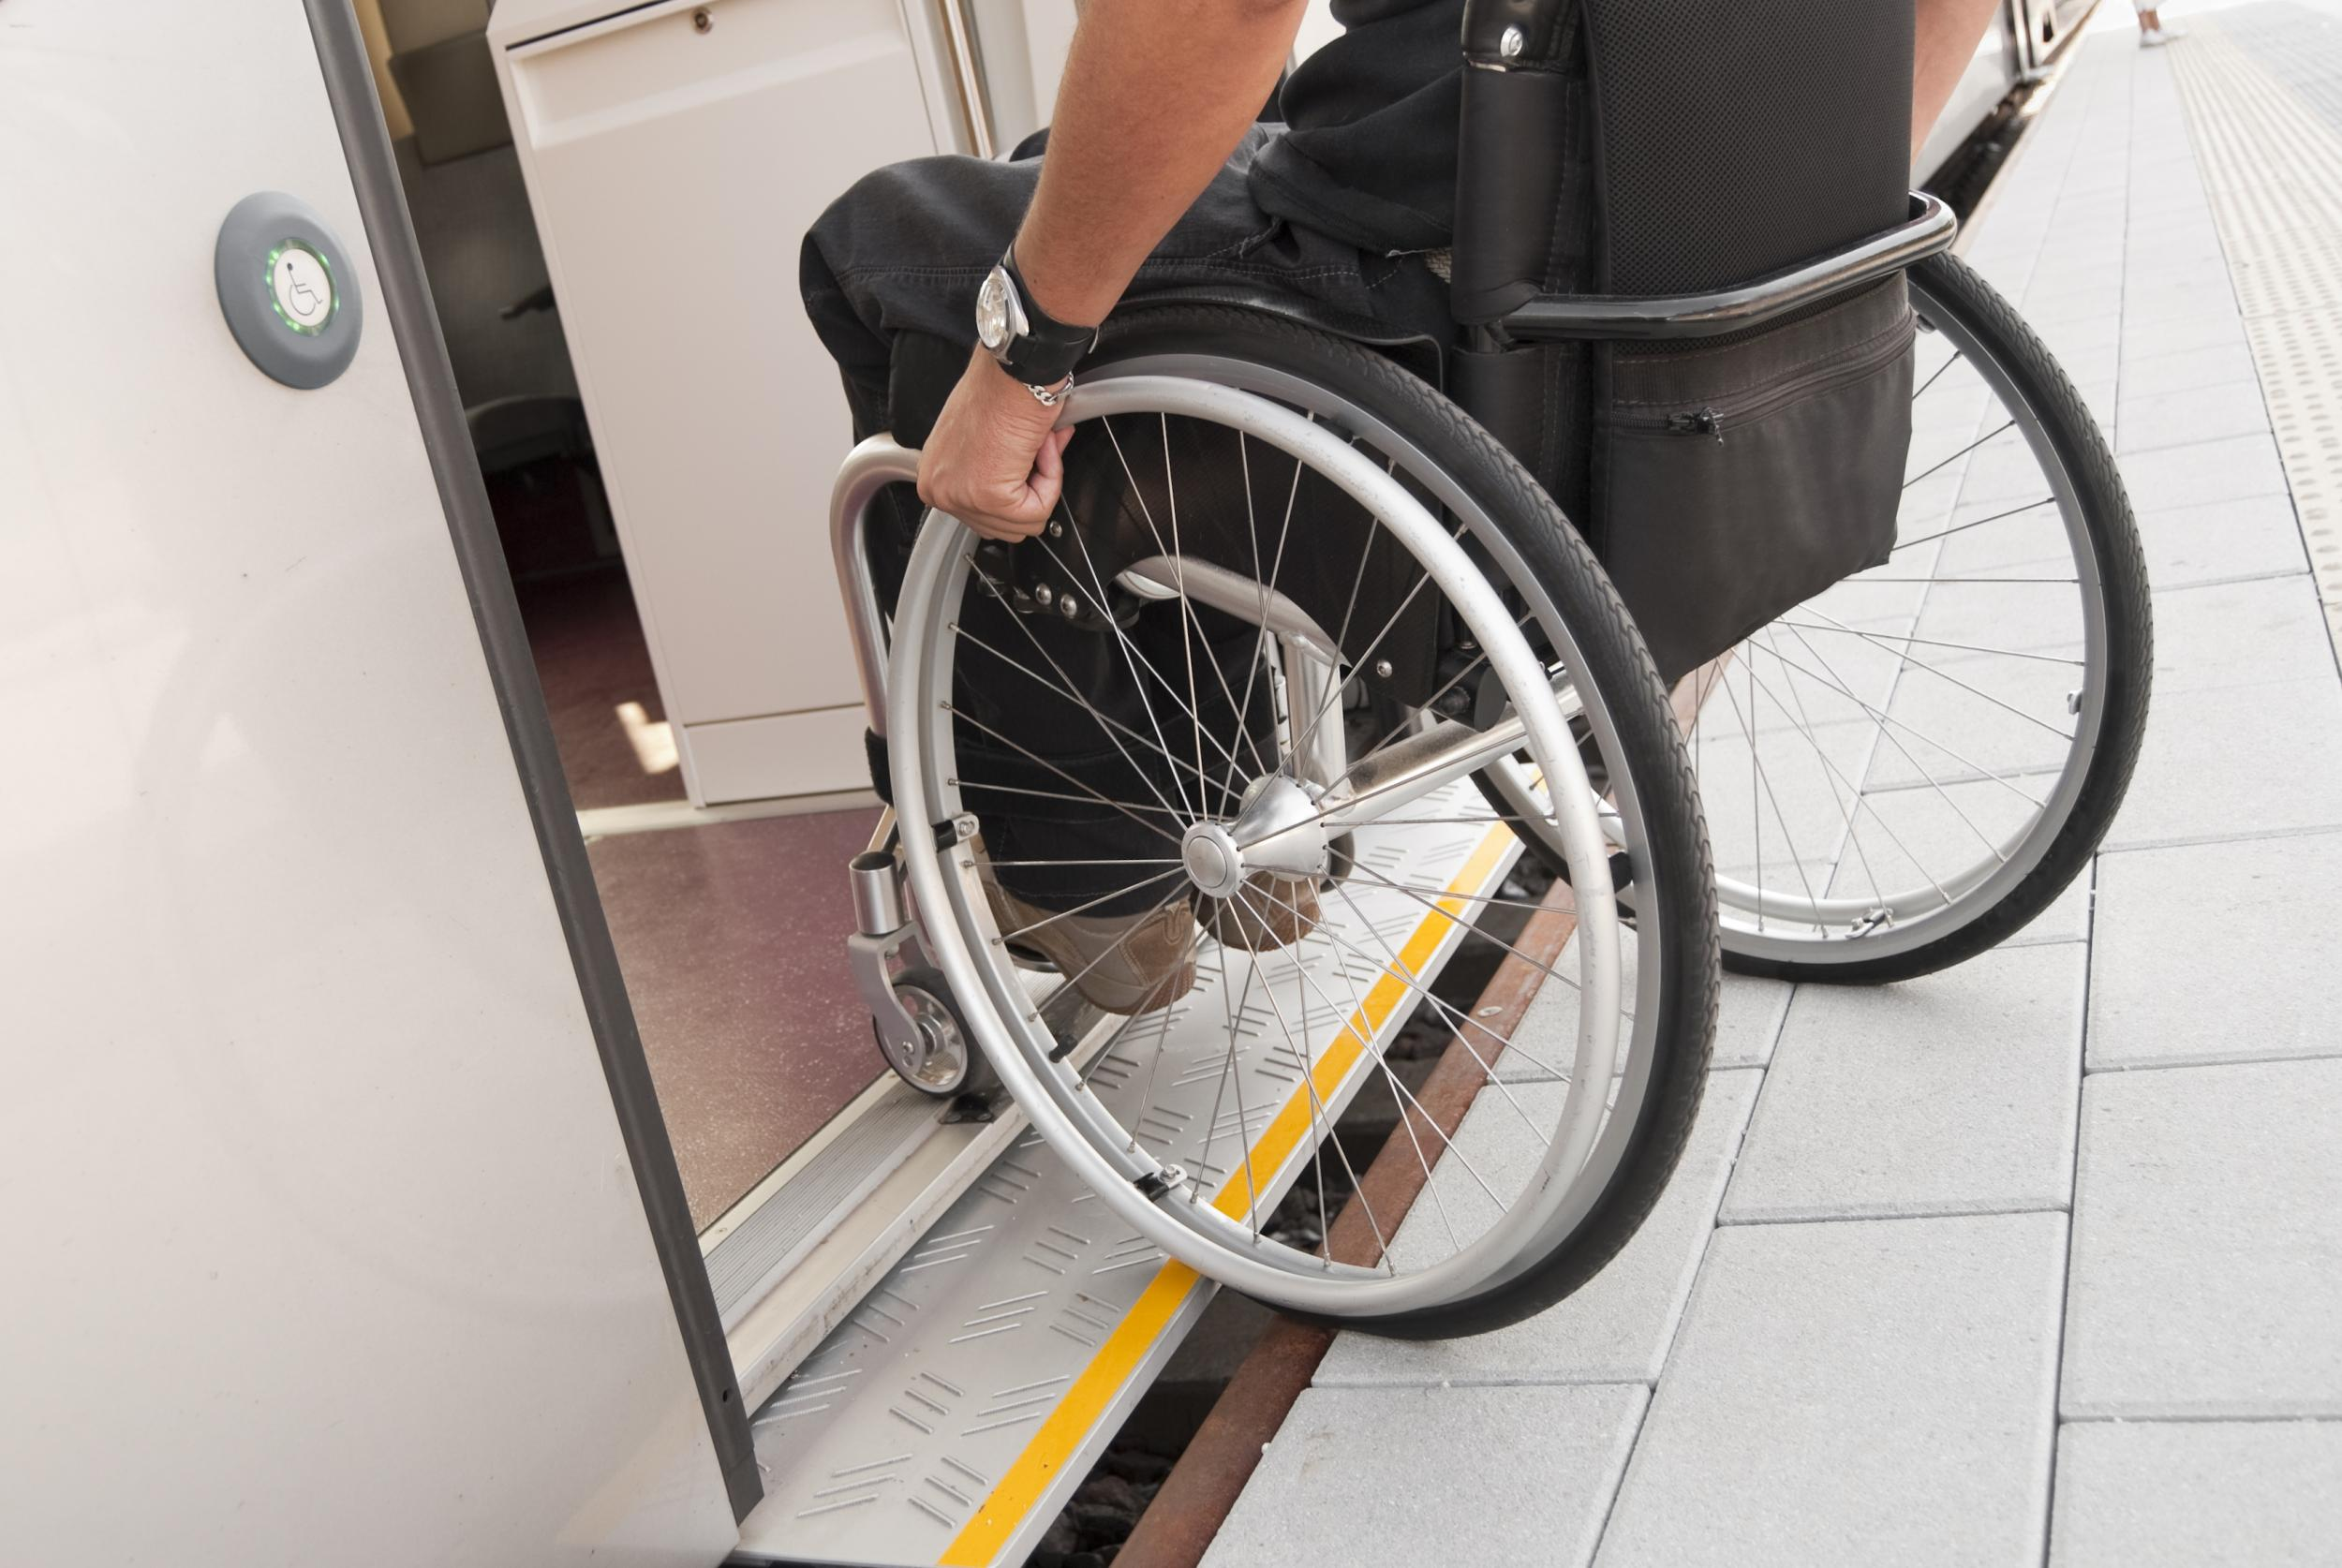 Violent hate crime against disabled has risen by 41 per cent in the last year, figures suggest